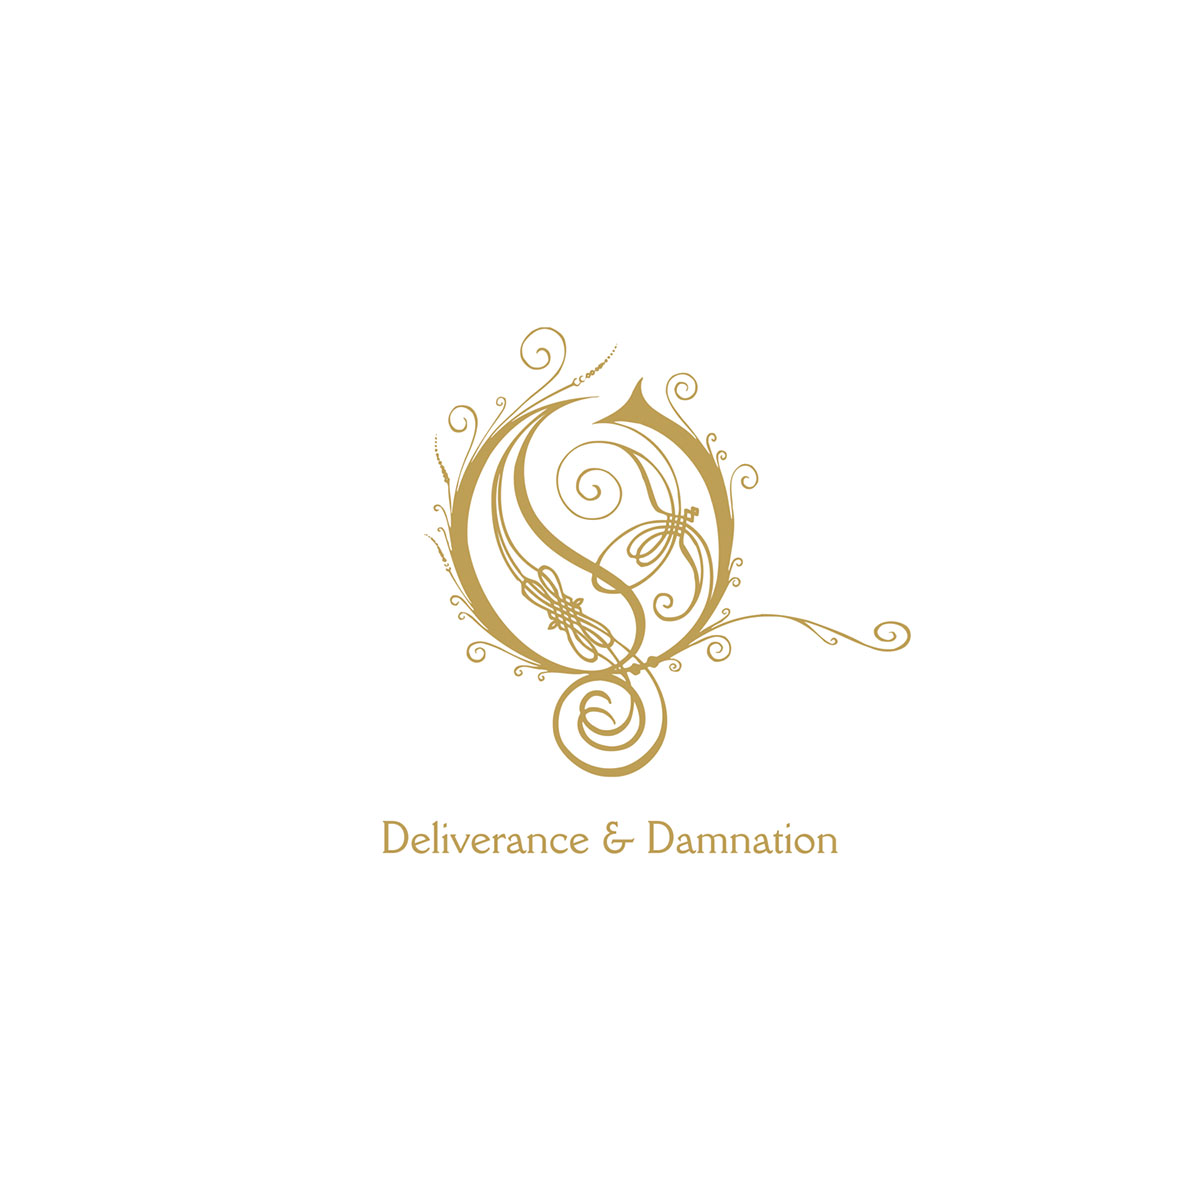 Damnation | opeth – download and listen to the album.